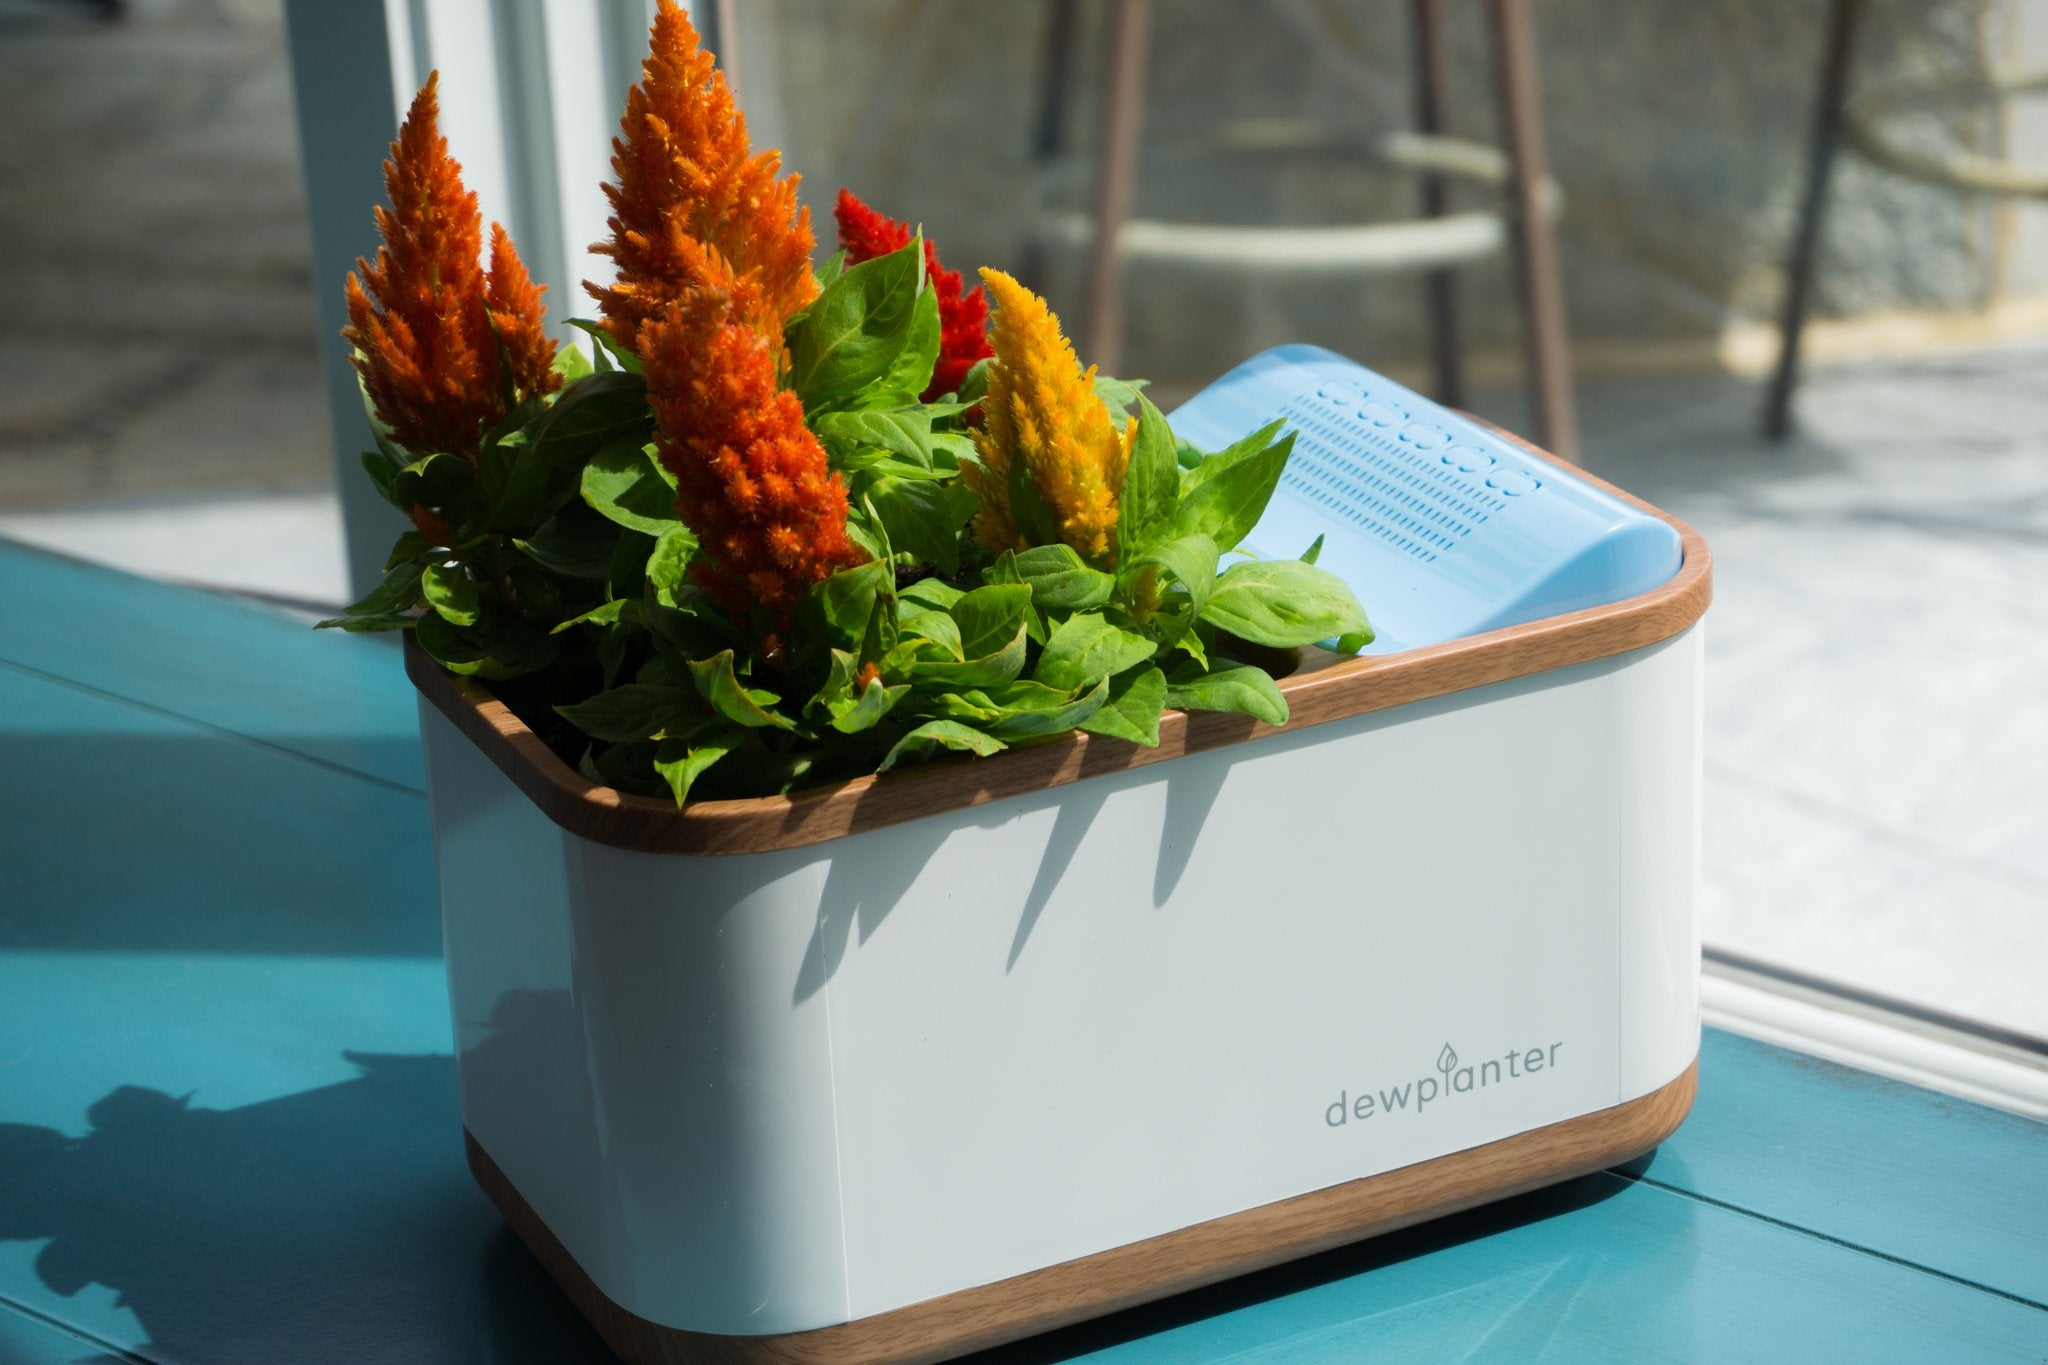 Dewplanter - The Water Generating Planter - Zip & Mos